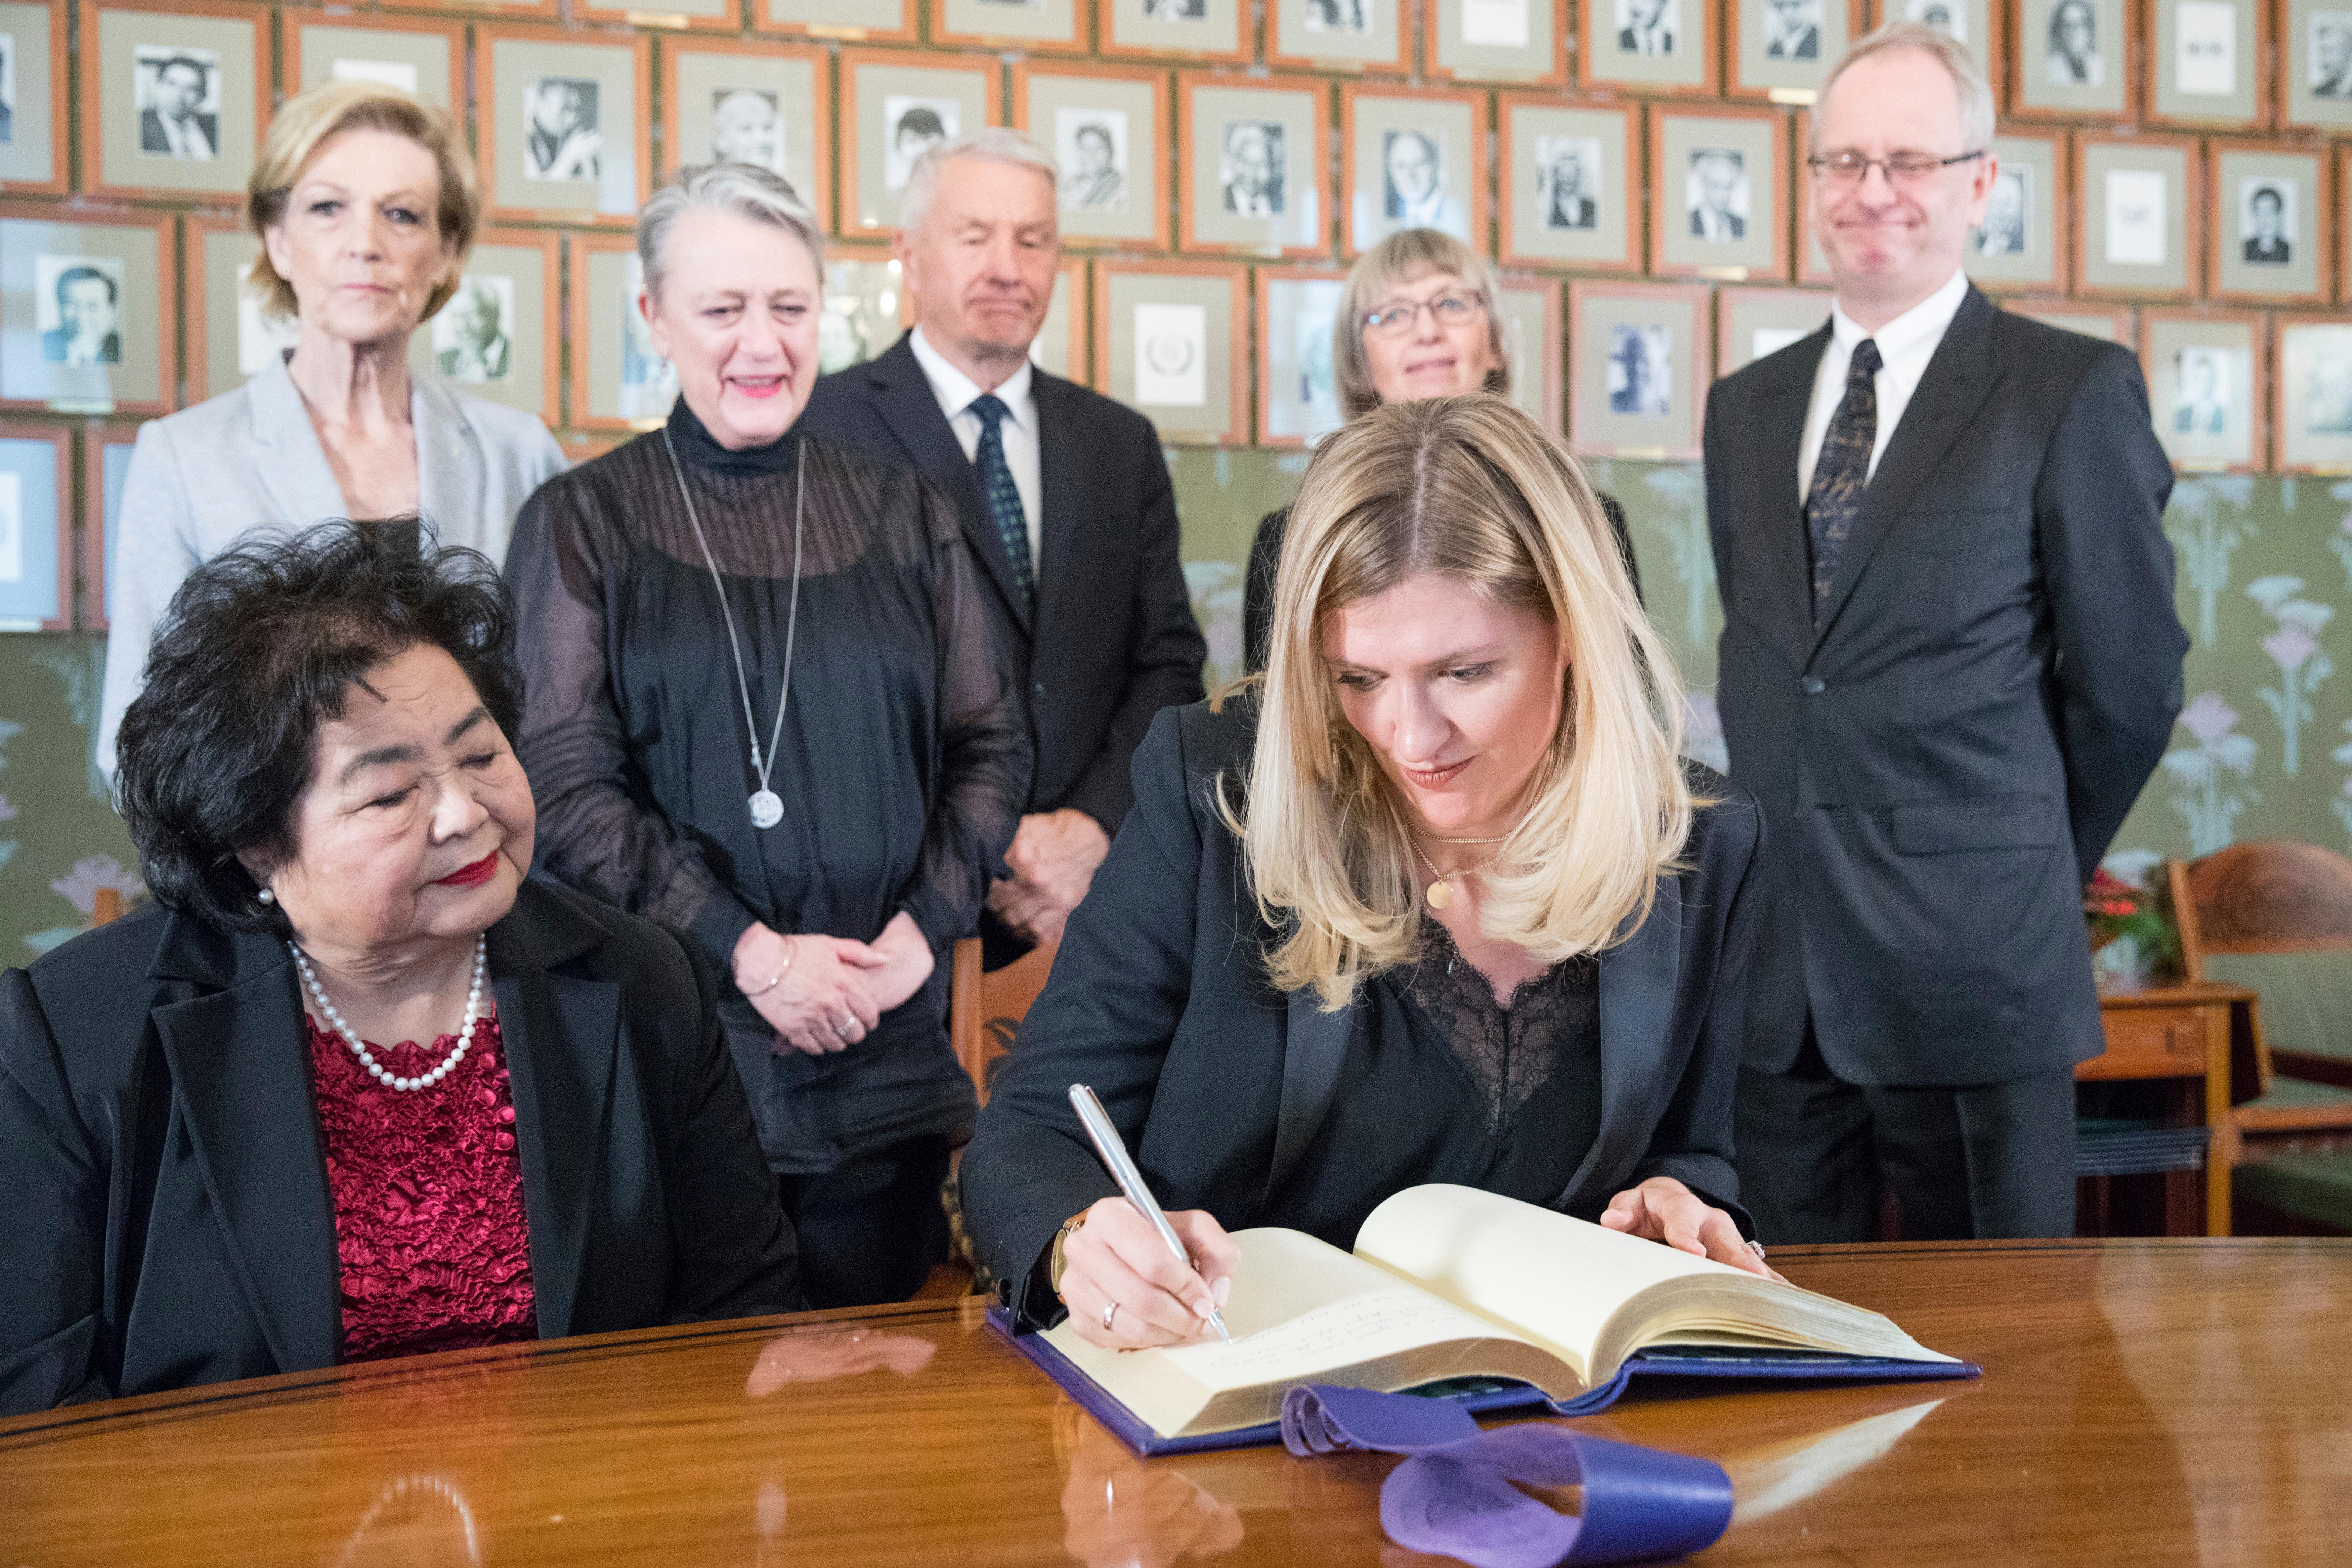 Executive Director of  ICAN (International Campaign to Abolish Nuclear Weapons), Beatrice Fihn signs the Nobel protocol, during a press conference at the Norwegian Nobel Committee, in Oslo, Norway, Saturday, Dec. 9, 2017. As long as atomic bombs exist, a disaster is inevitable, the head of the International Campaign to Abolish Nuclear Weapons, the winner of this year's Nobel Peace Prize, said Saturday. (Audun Braastad/NTB scanpix via AP)